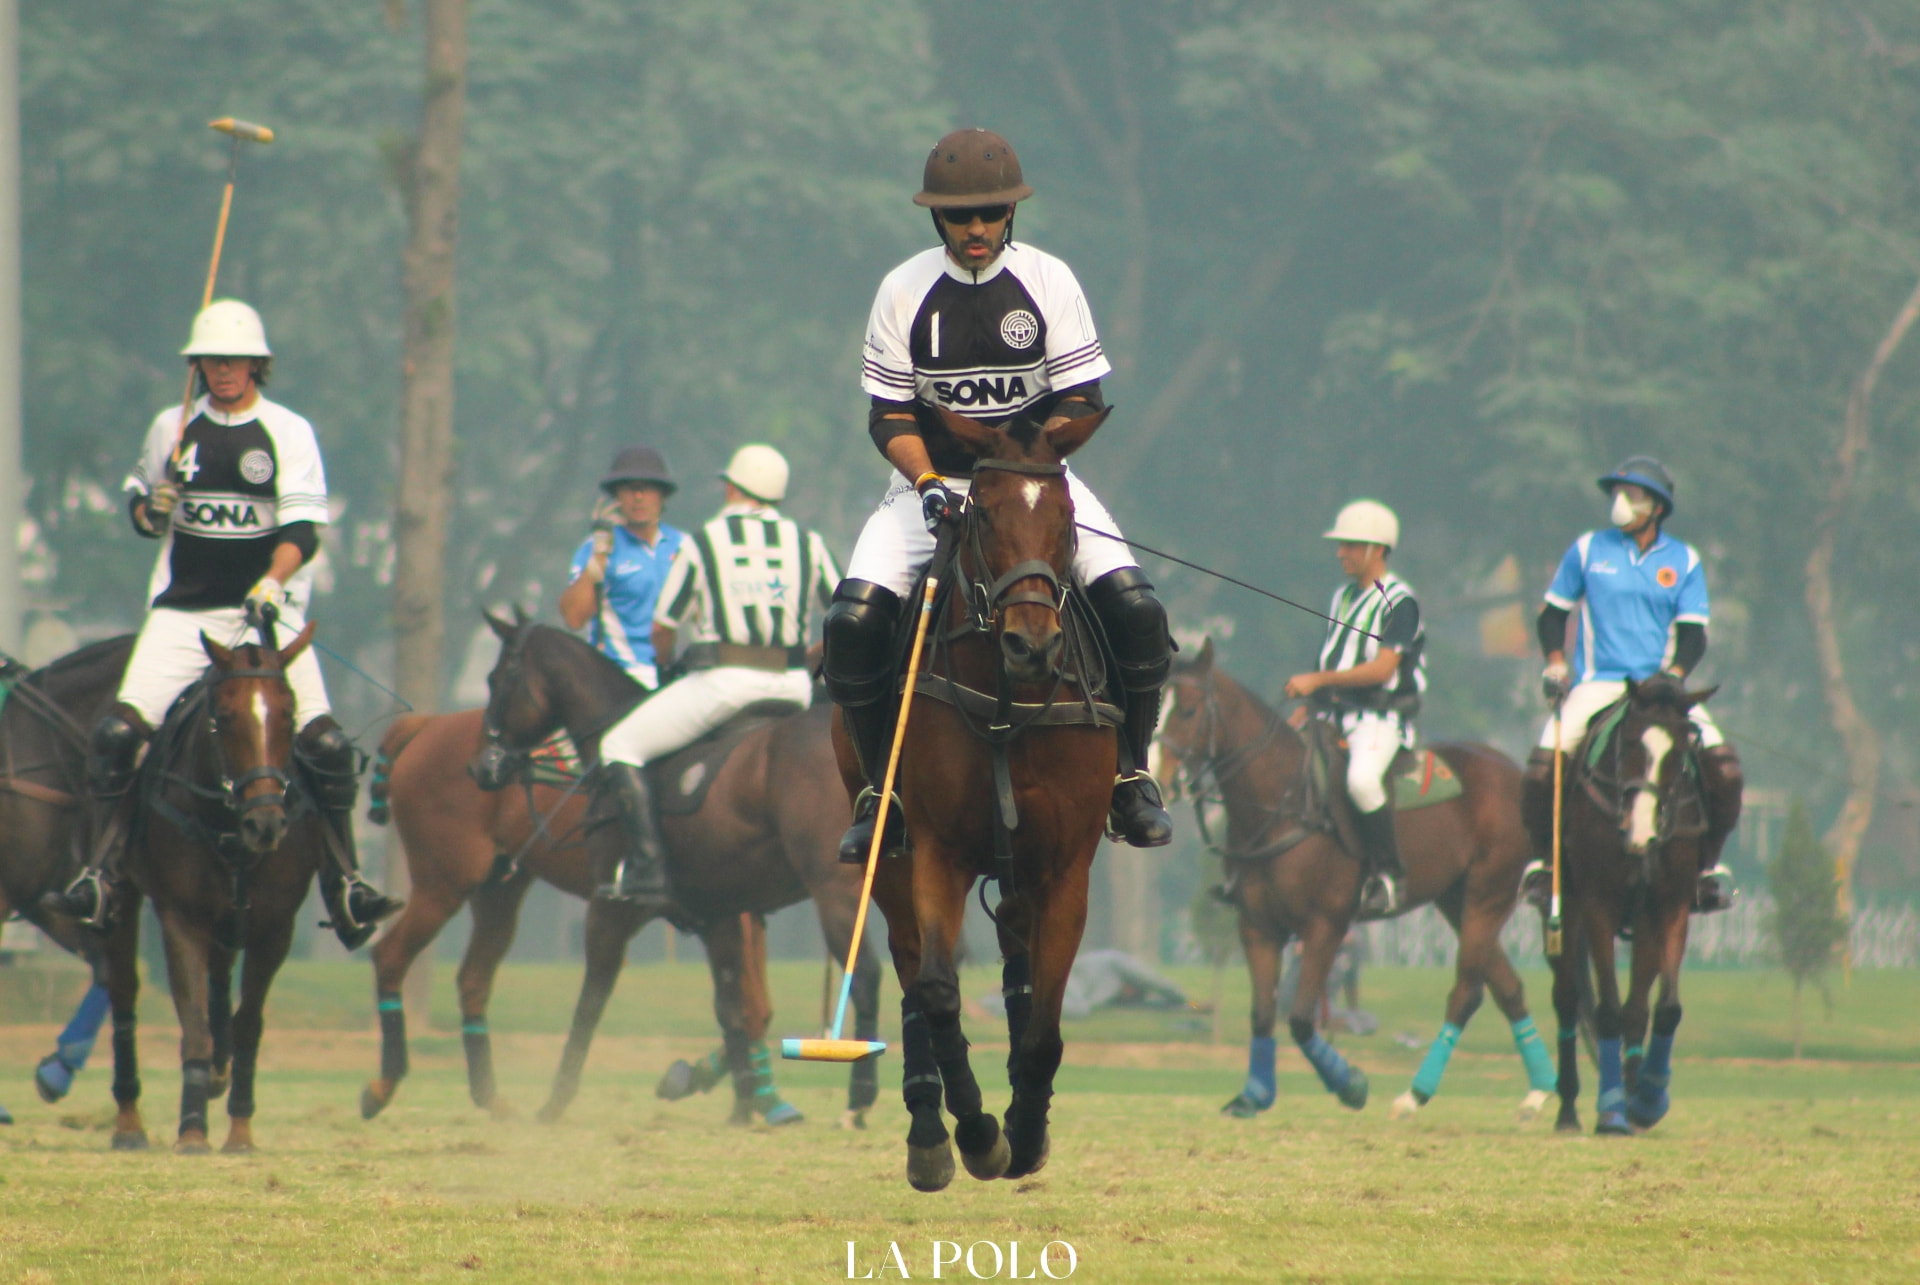 Sunjay J Kapur in play during the Indian Polo Season